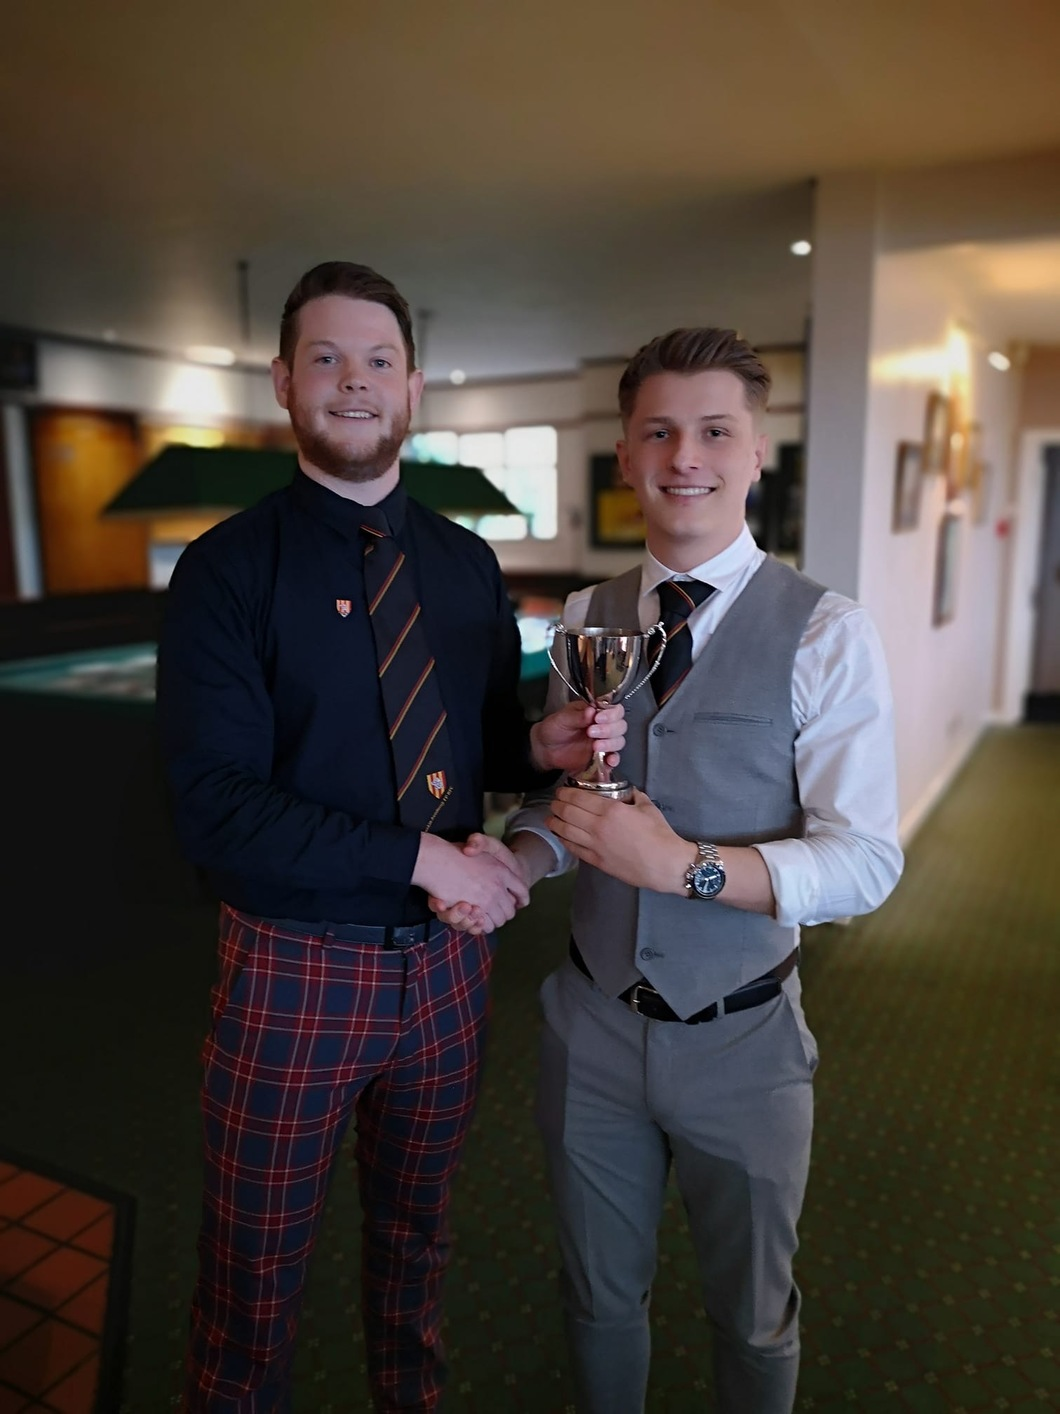 two young men with trophy - one is wearing nice tartan trousers